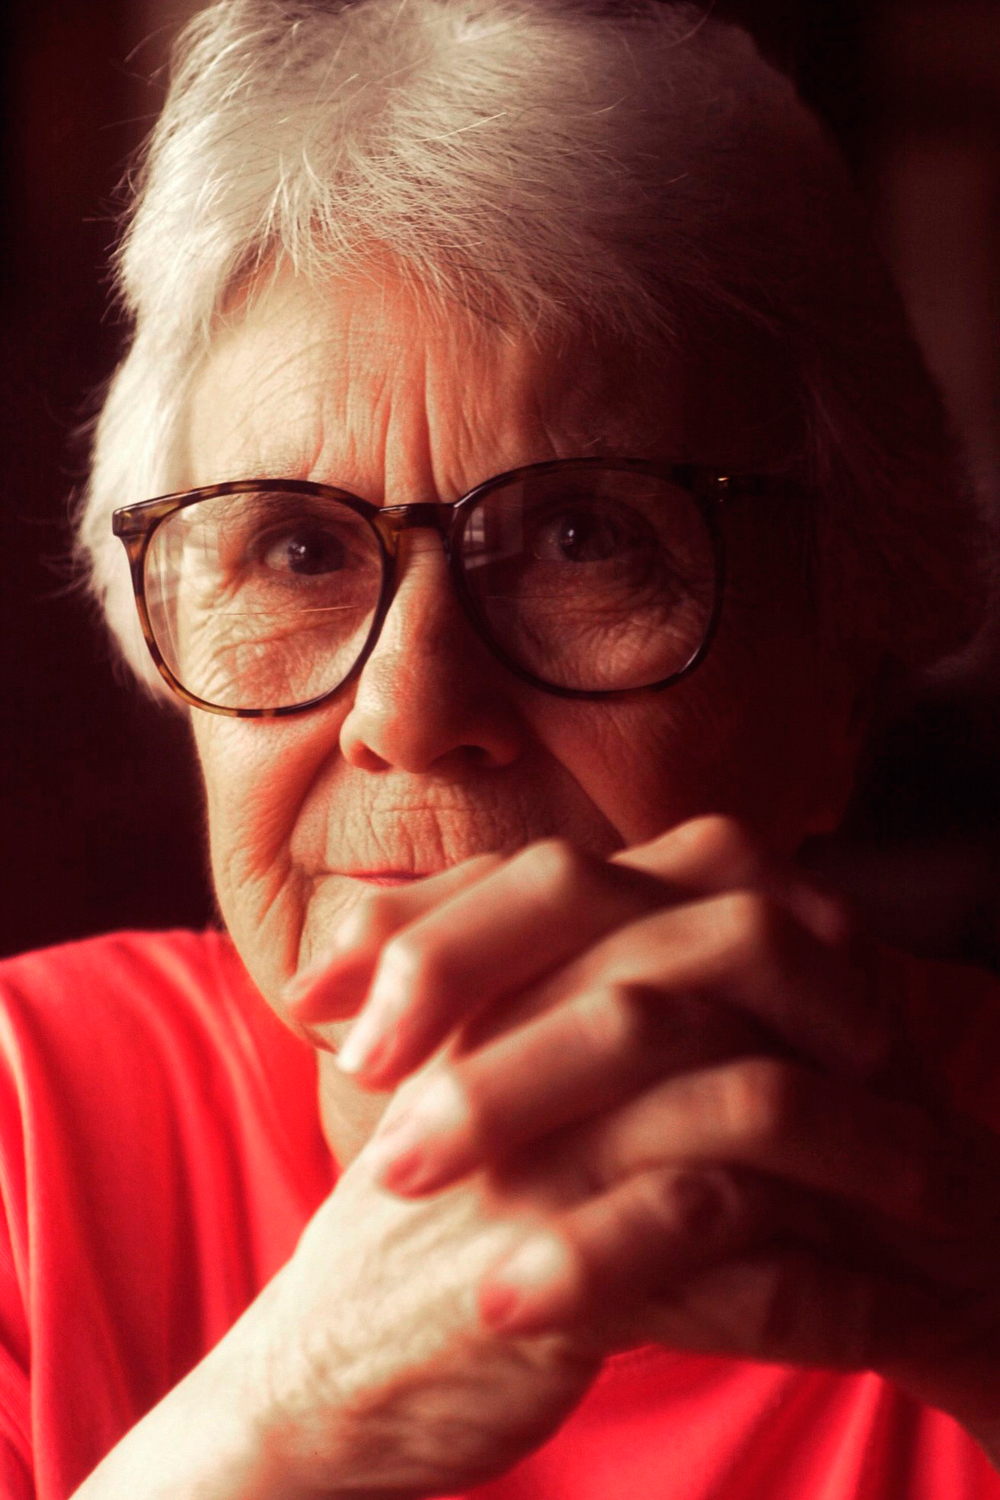 15 Things You Need To Know About Harper Lee's To Kill A Mockingbird Sequel